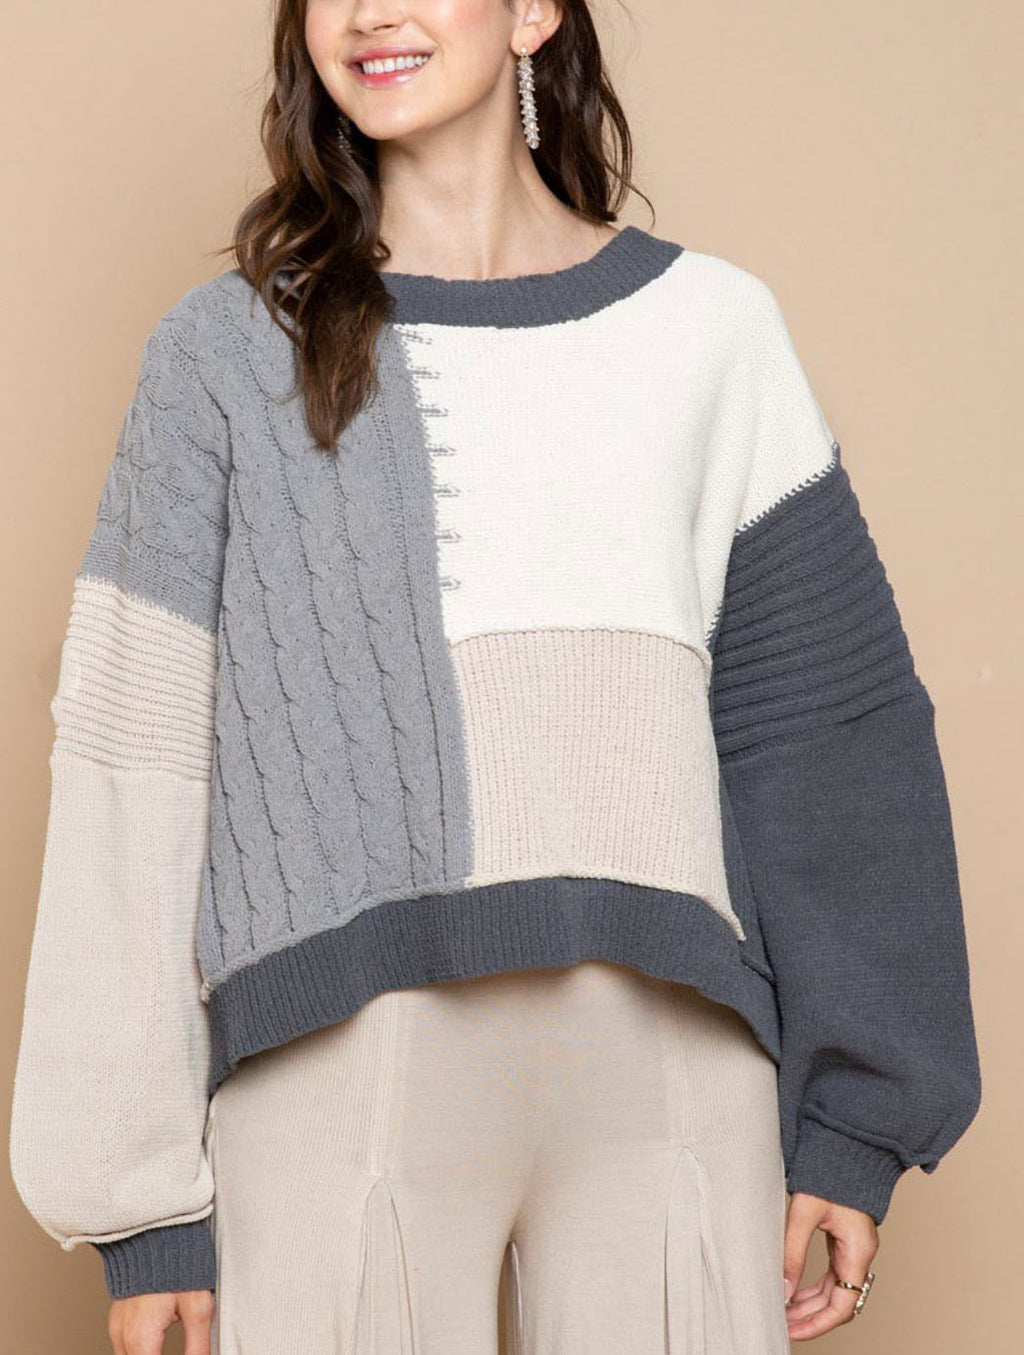 Pol Patchwork Pullover Sweater in Charcoal Multi